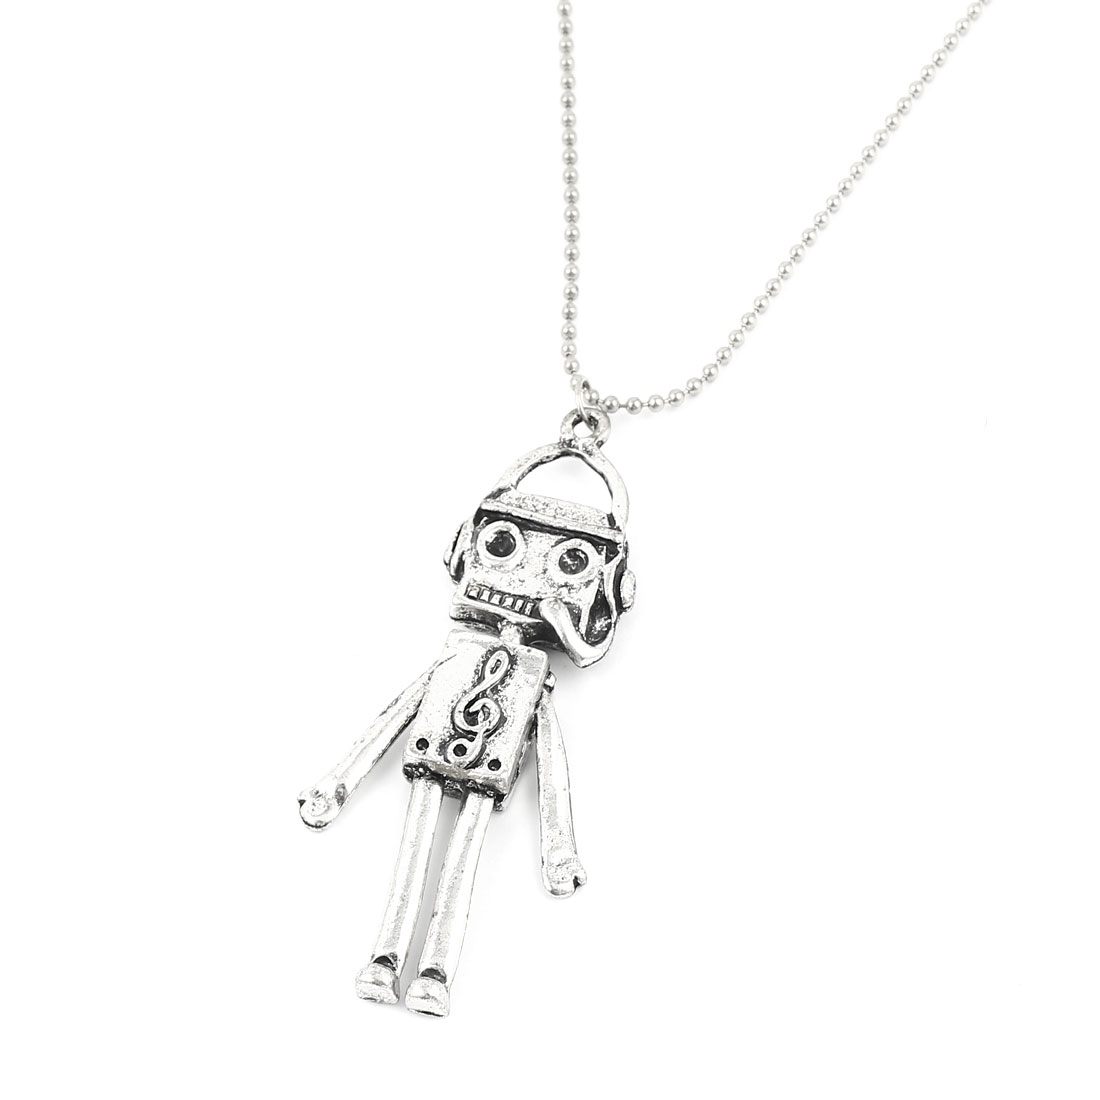 Silver Tone Metal Chain Robot Design Pendant Dress Sweater Necklace for Lady